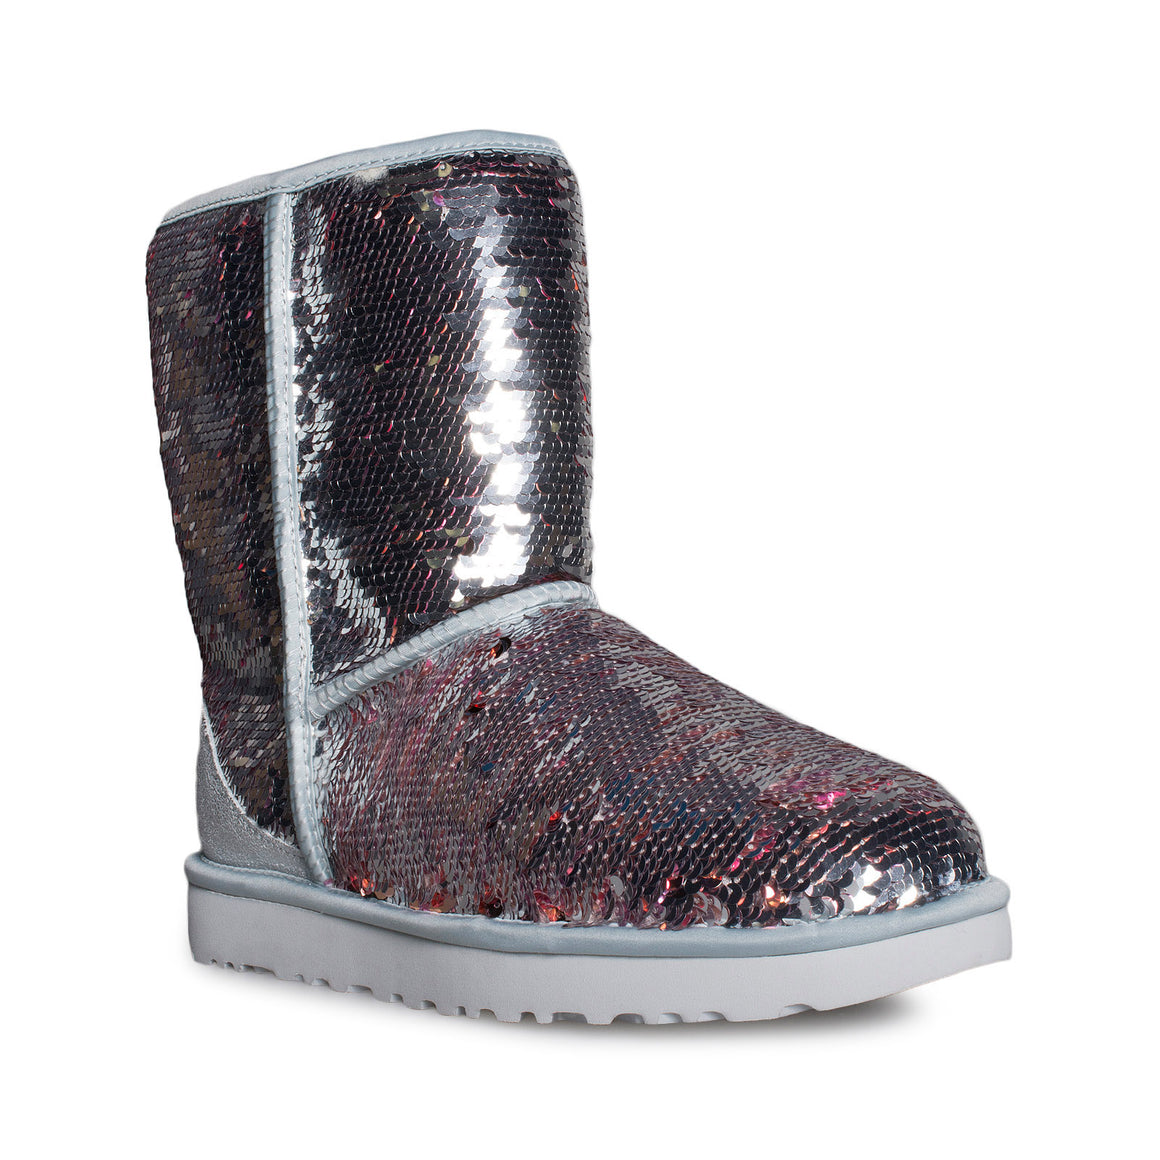 7110a465a10c ... UGG Classic Short Sequin Silver Boots - Women s